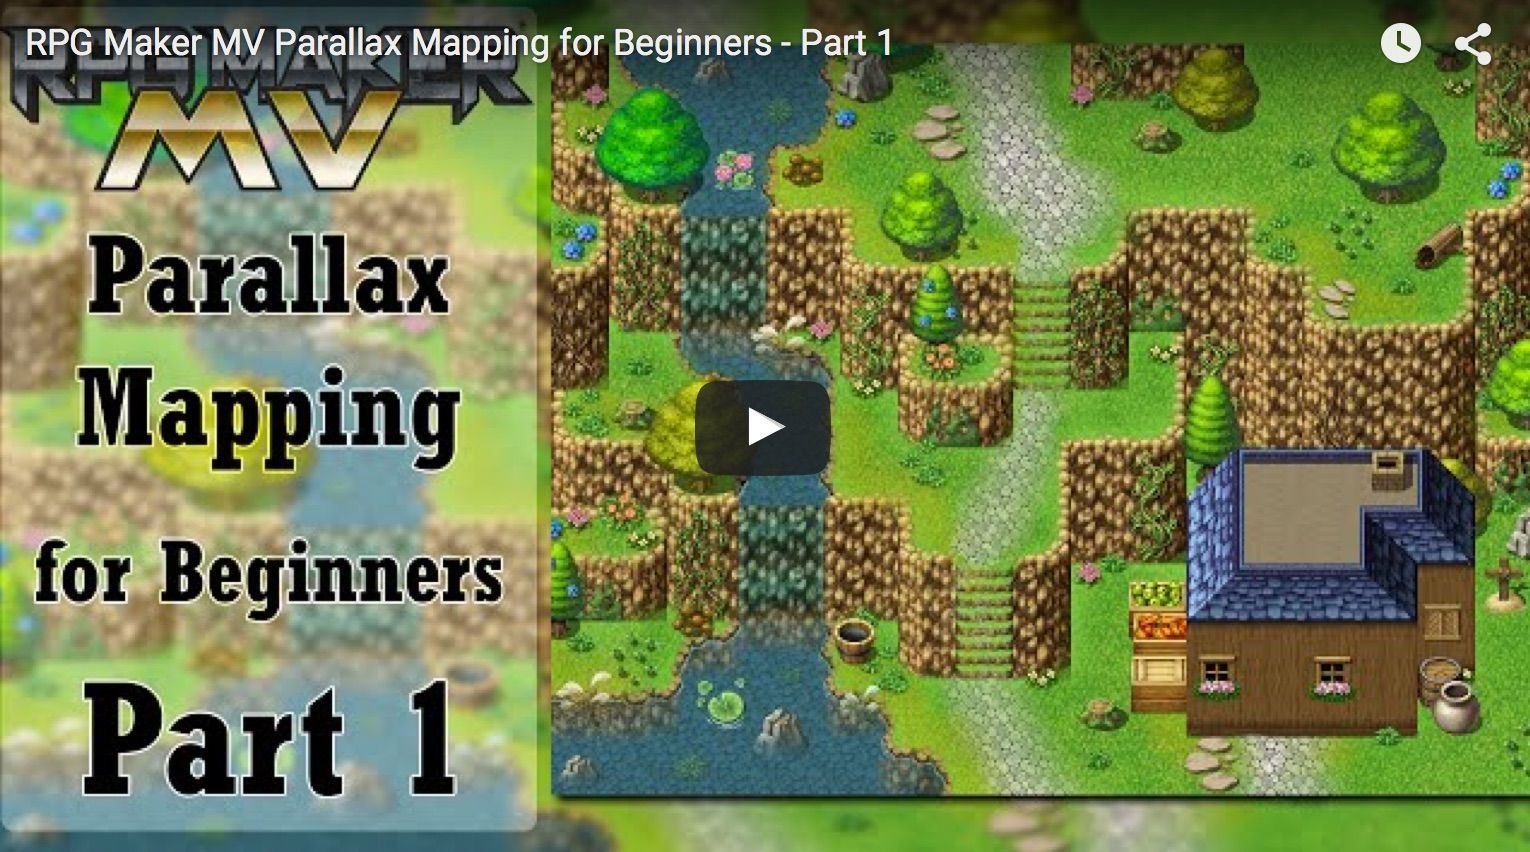 My parallax mapping tutorial, a 3-part video series, made